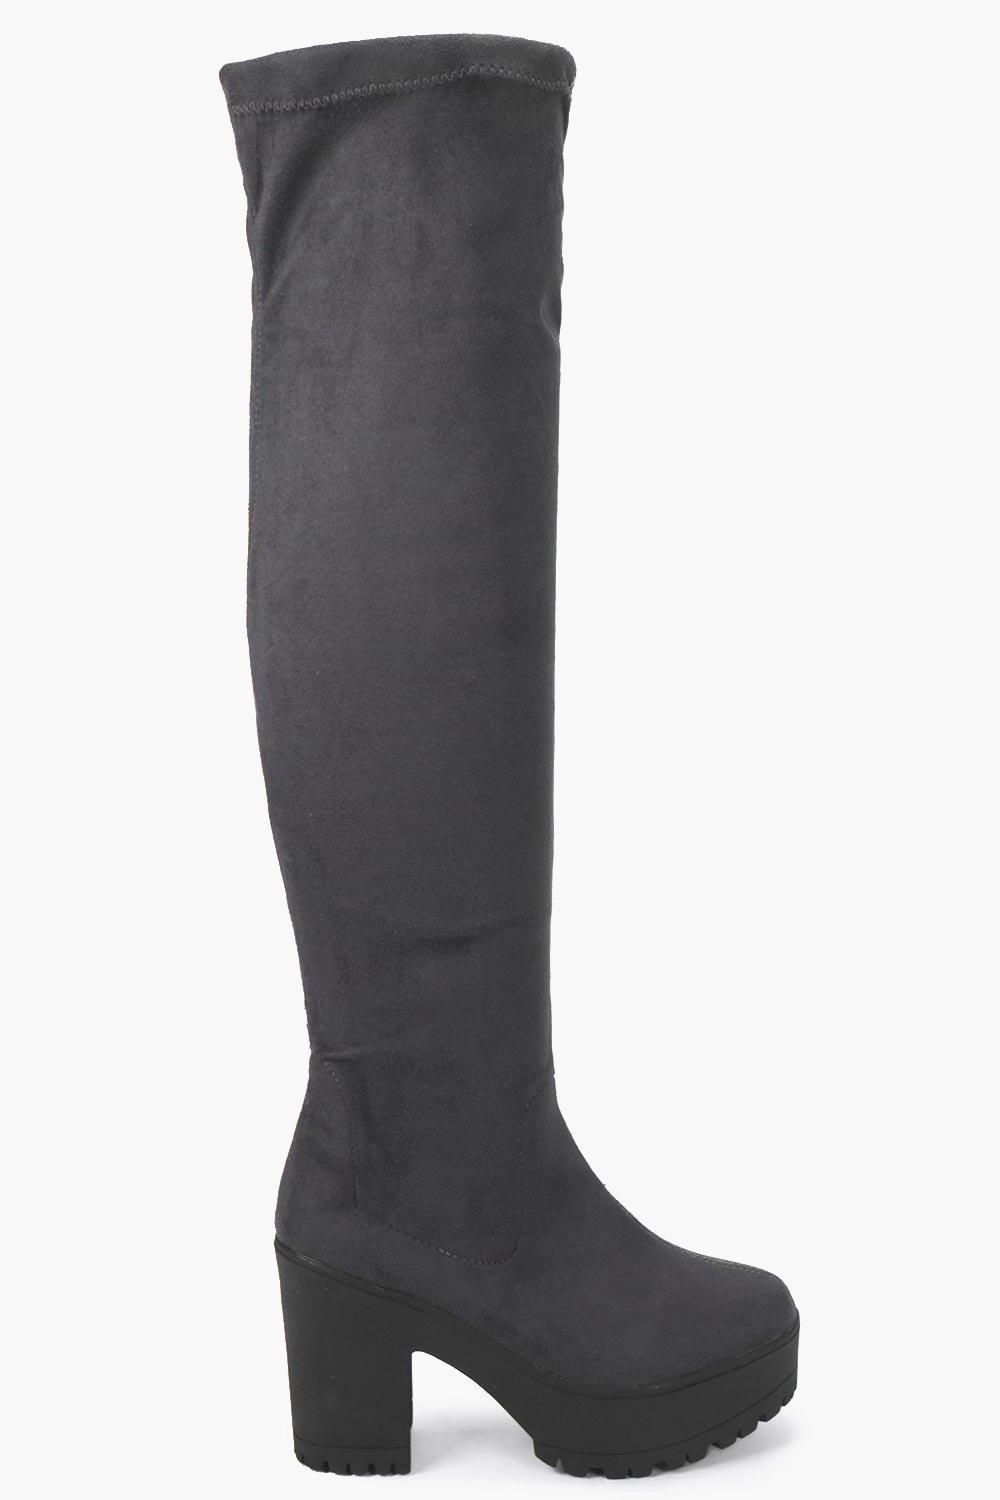 Scarlette Cleated Over The Knee Boot